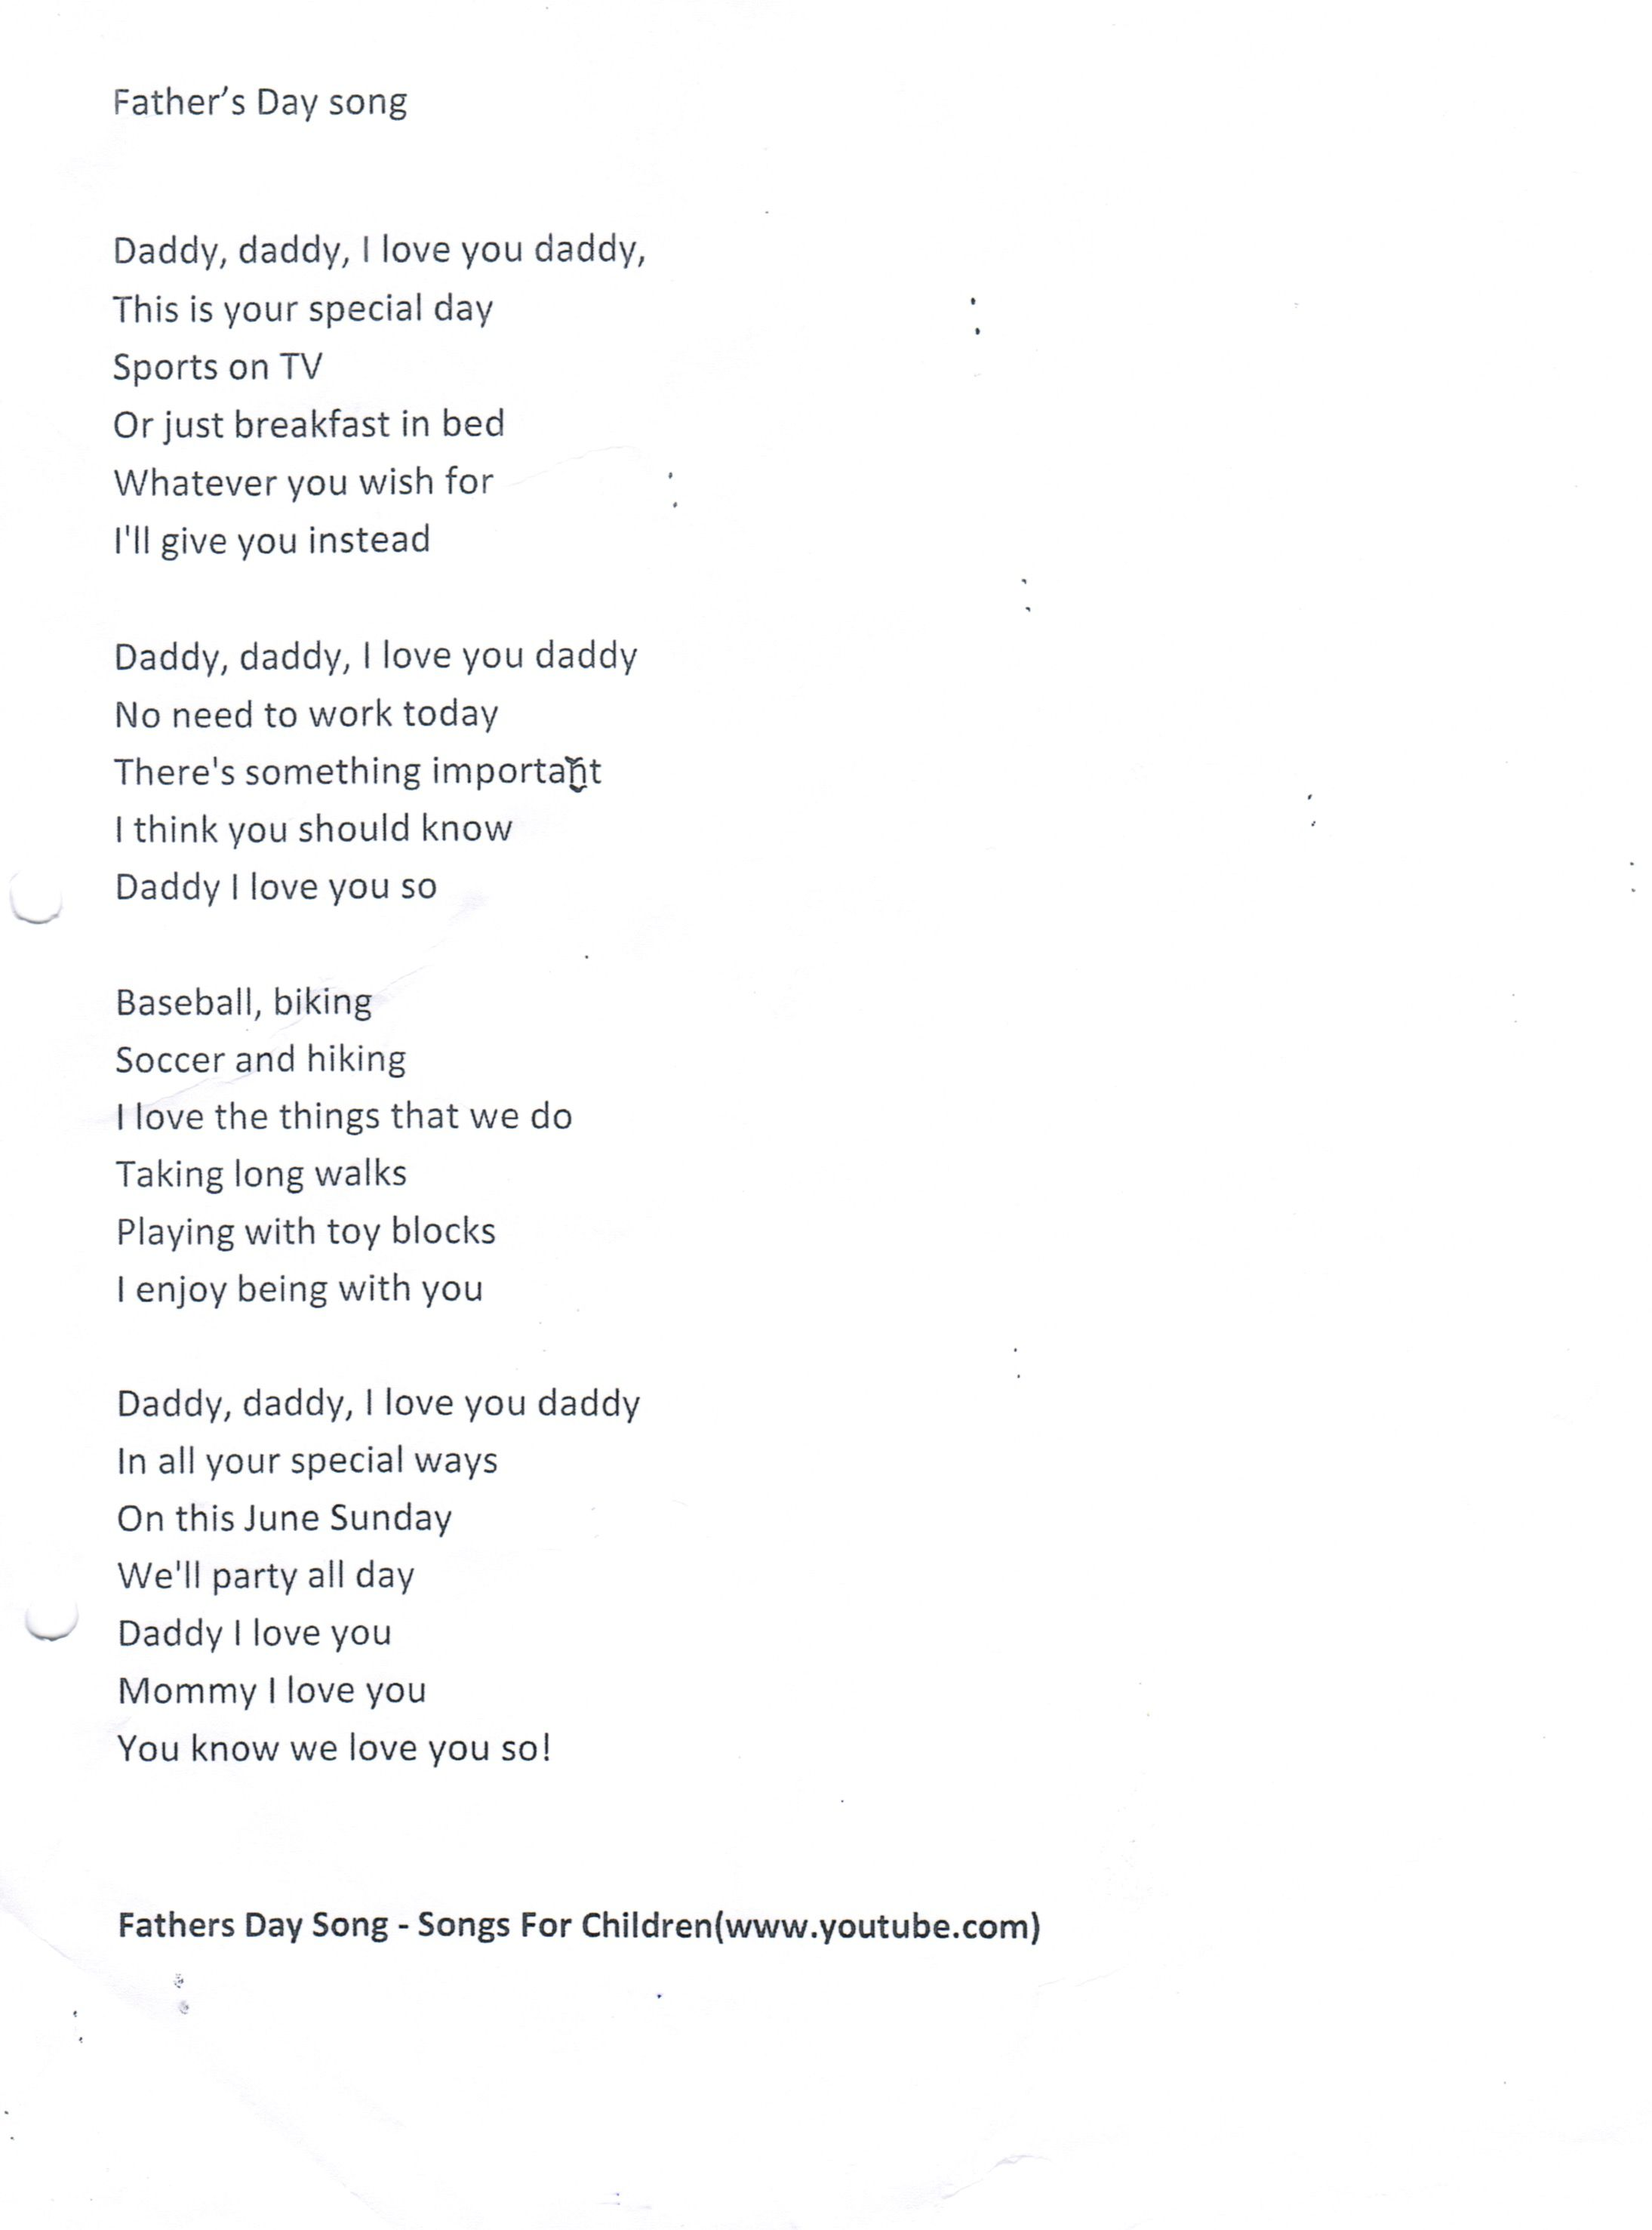 Father's Day Song | Song Lyrics | Fathers day songs, Father